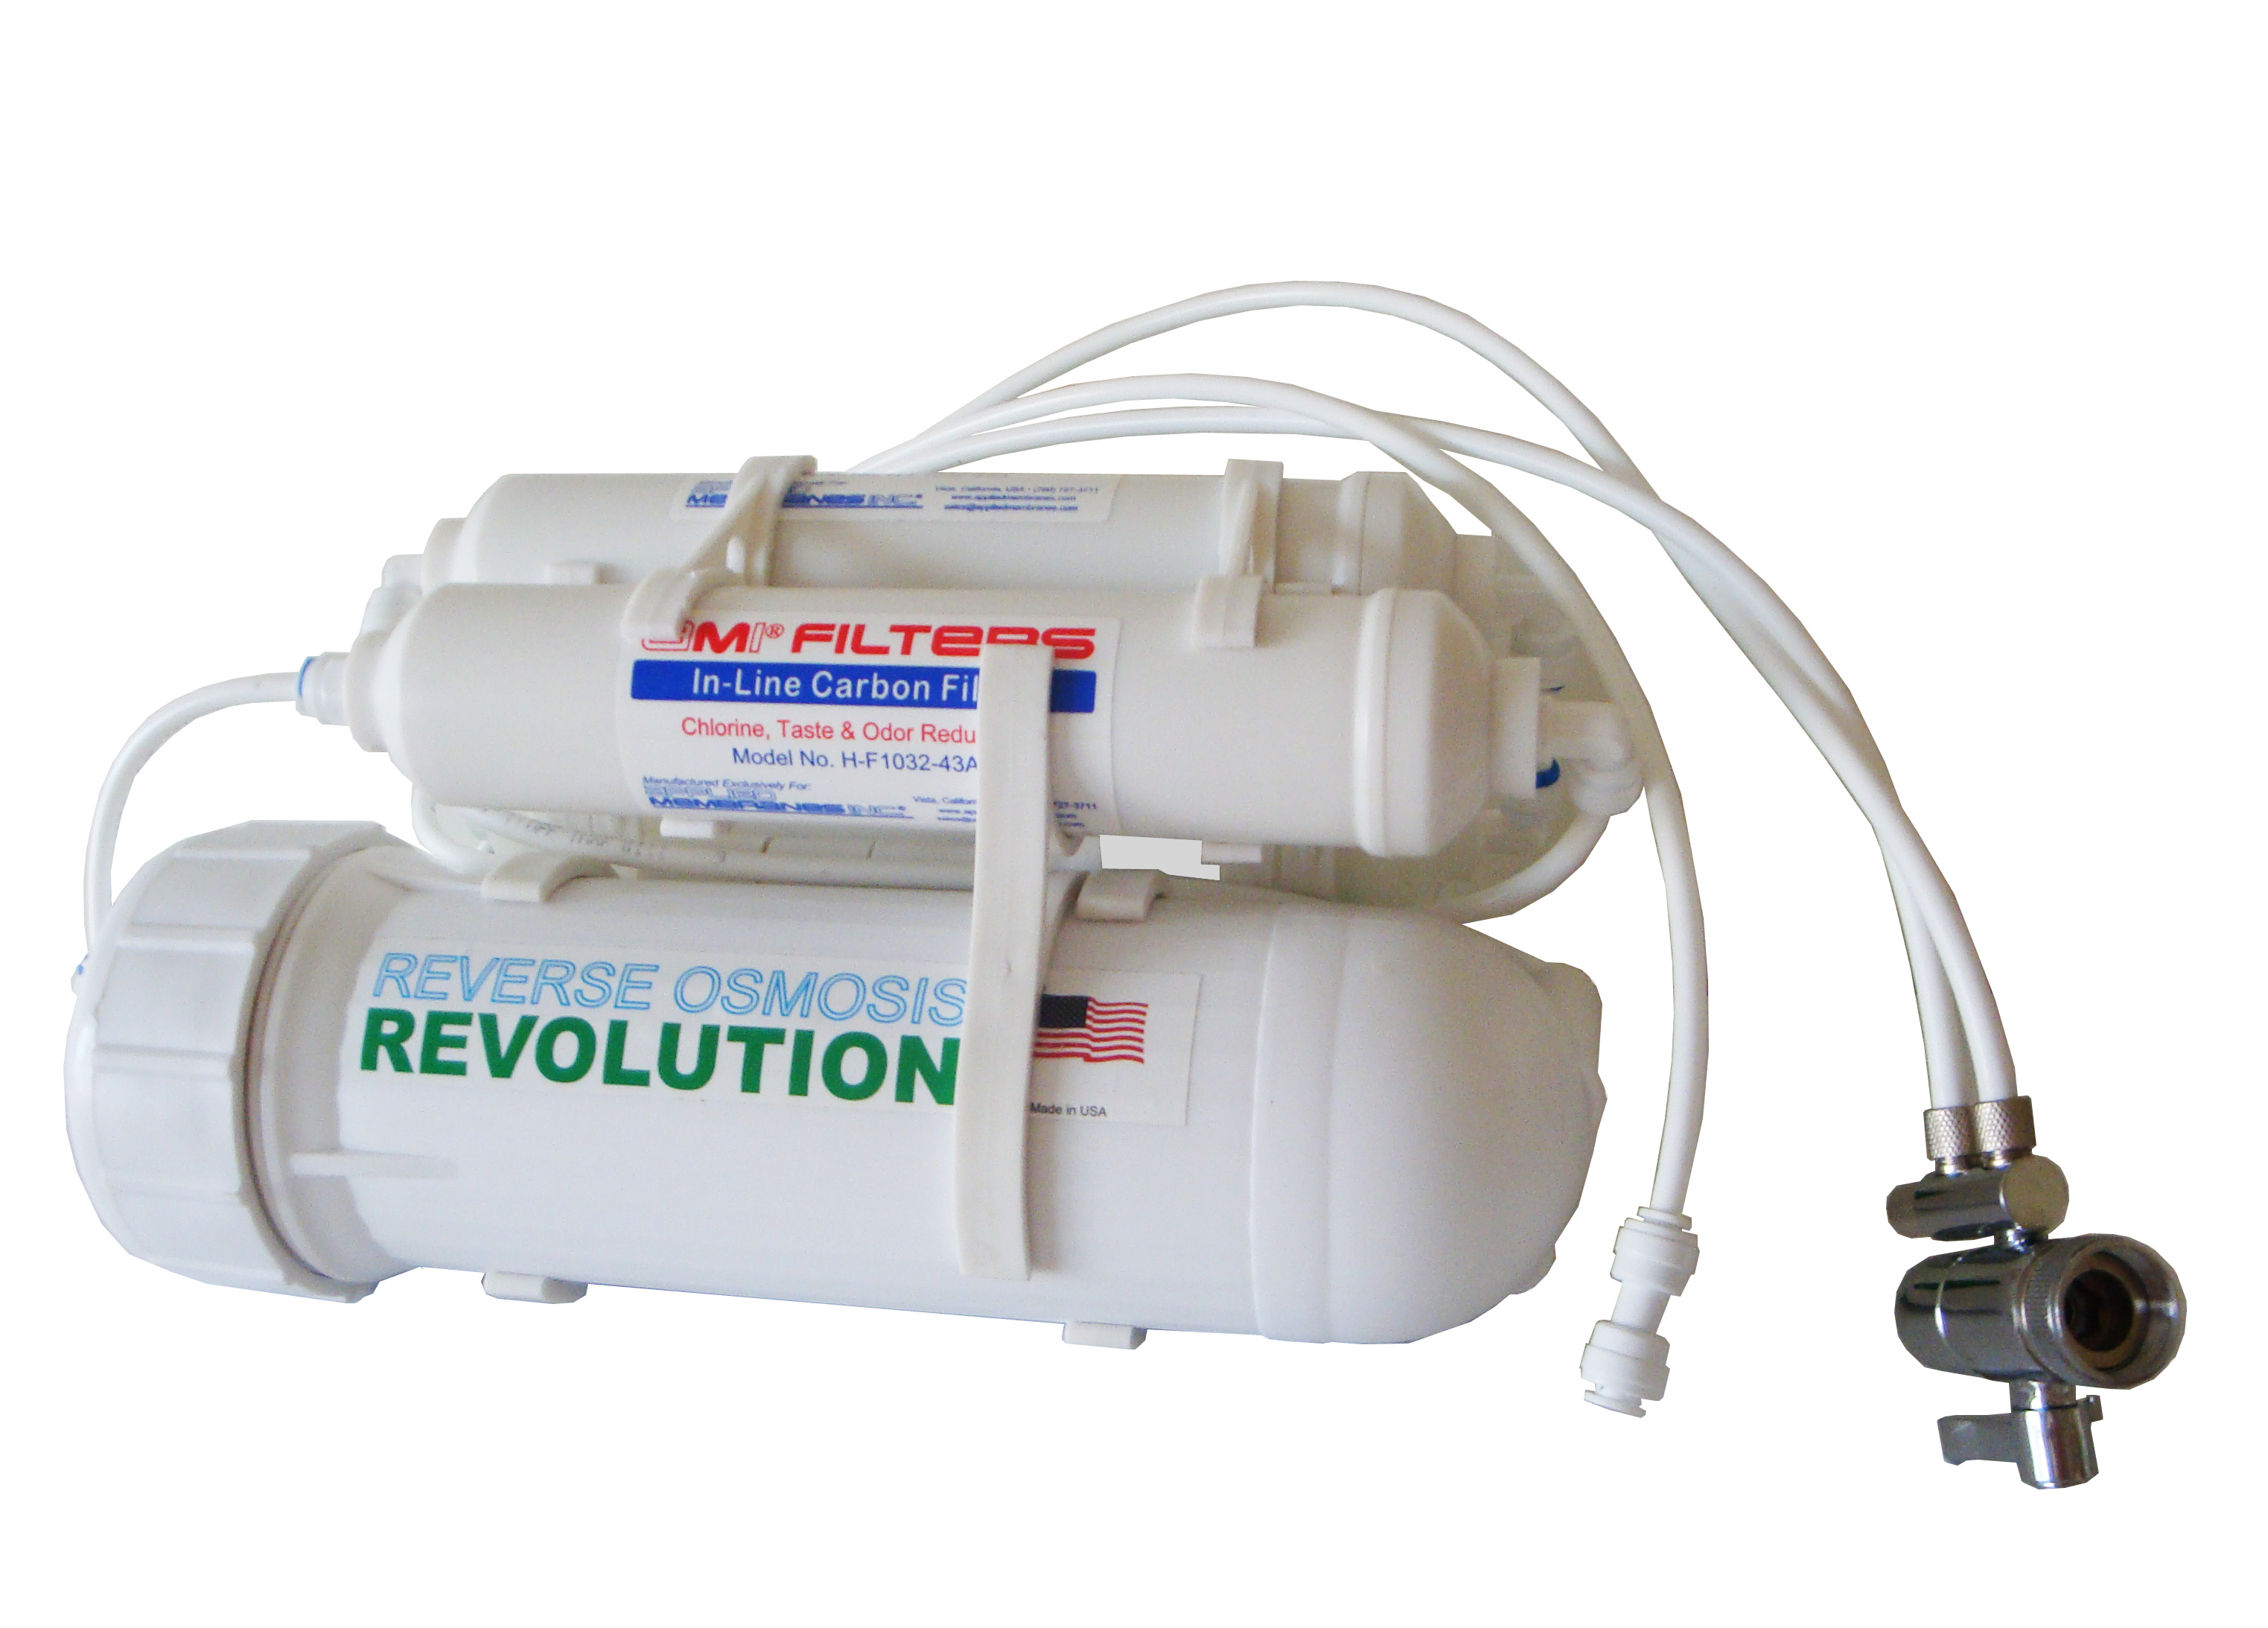 Turbo 200 GPD 5 stage Home/Light Commercial Reverse Osmosis Revolution Water Purification System (with Super 200 GPD Membrane)